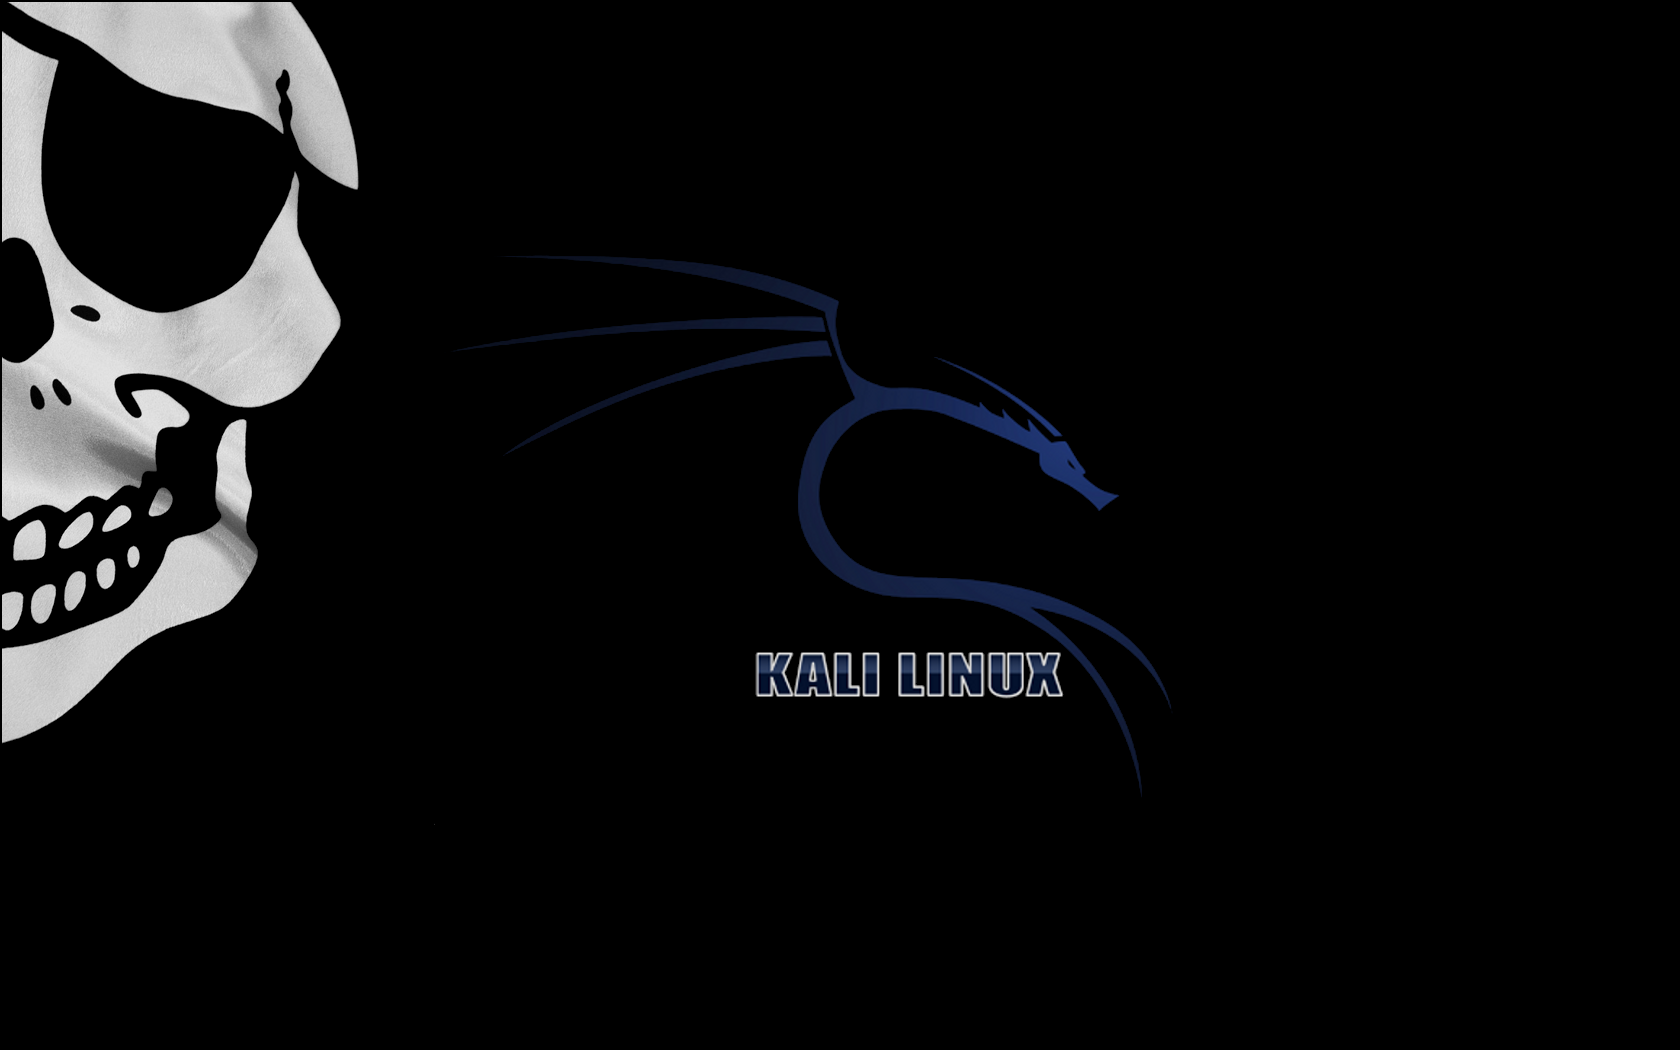 HD Wallpapers From All Kinds To Download Kali Linux wallpaper 1680x1050